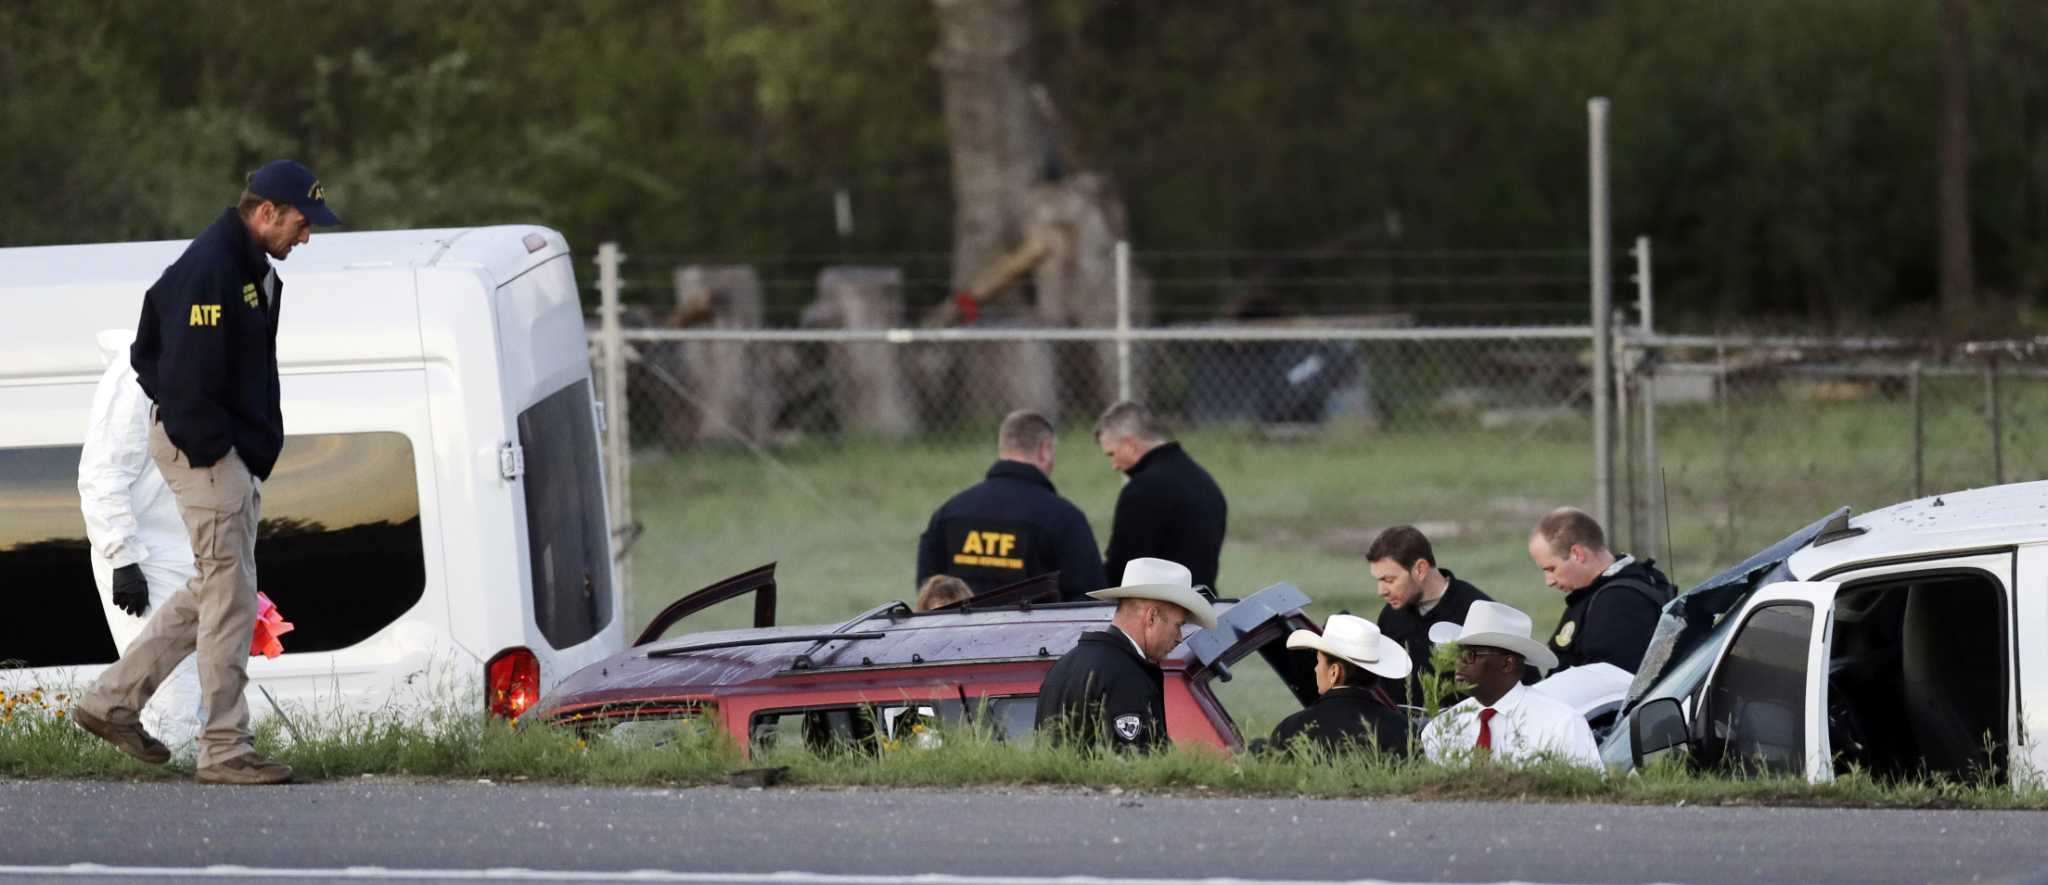 Officials ID Austin bombing suspect as Pflugerville resident | My San Antonio